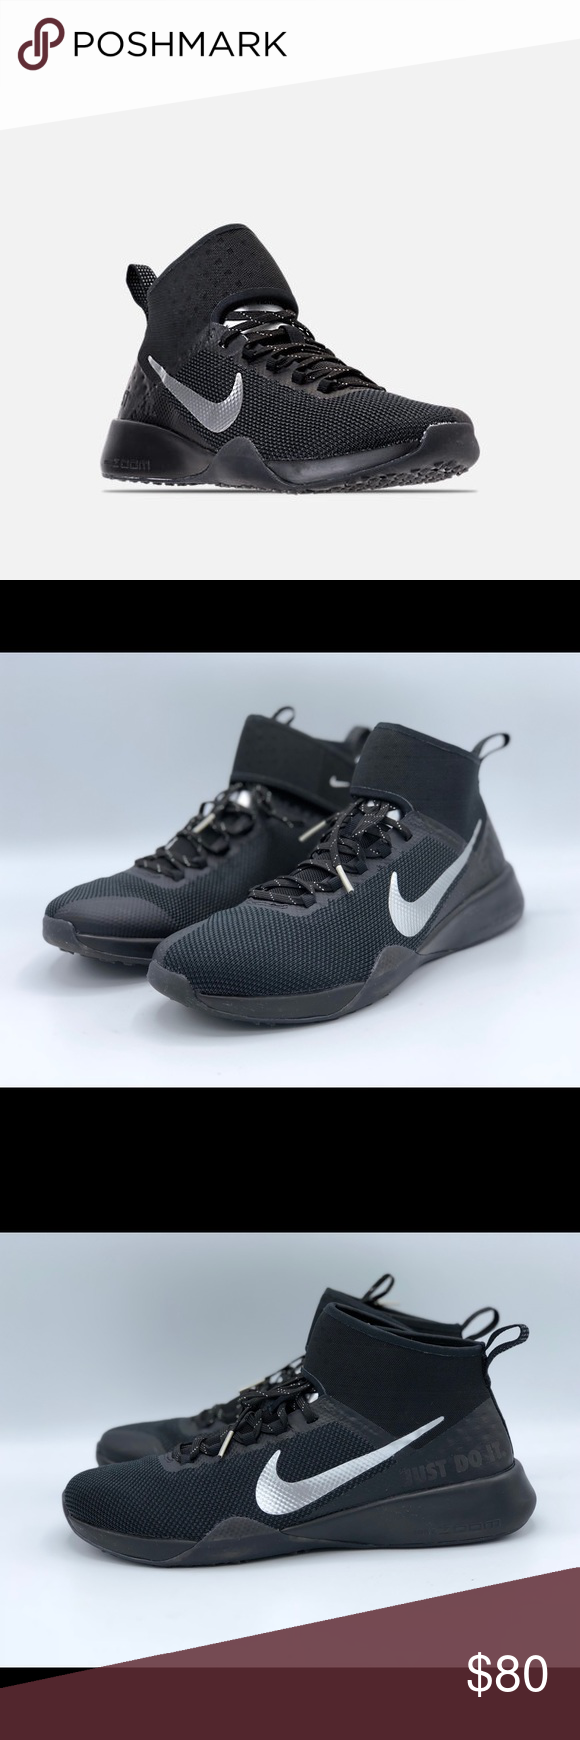 43caeddbb540 Nike Air Zoom Strong 2 Selfie Training These are almost new NIKE Air Zoom  Strong 2